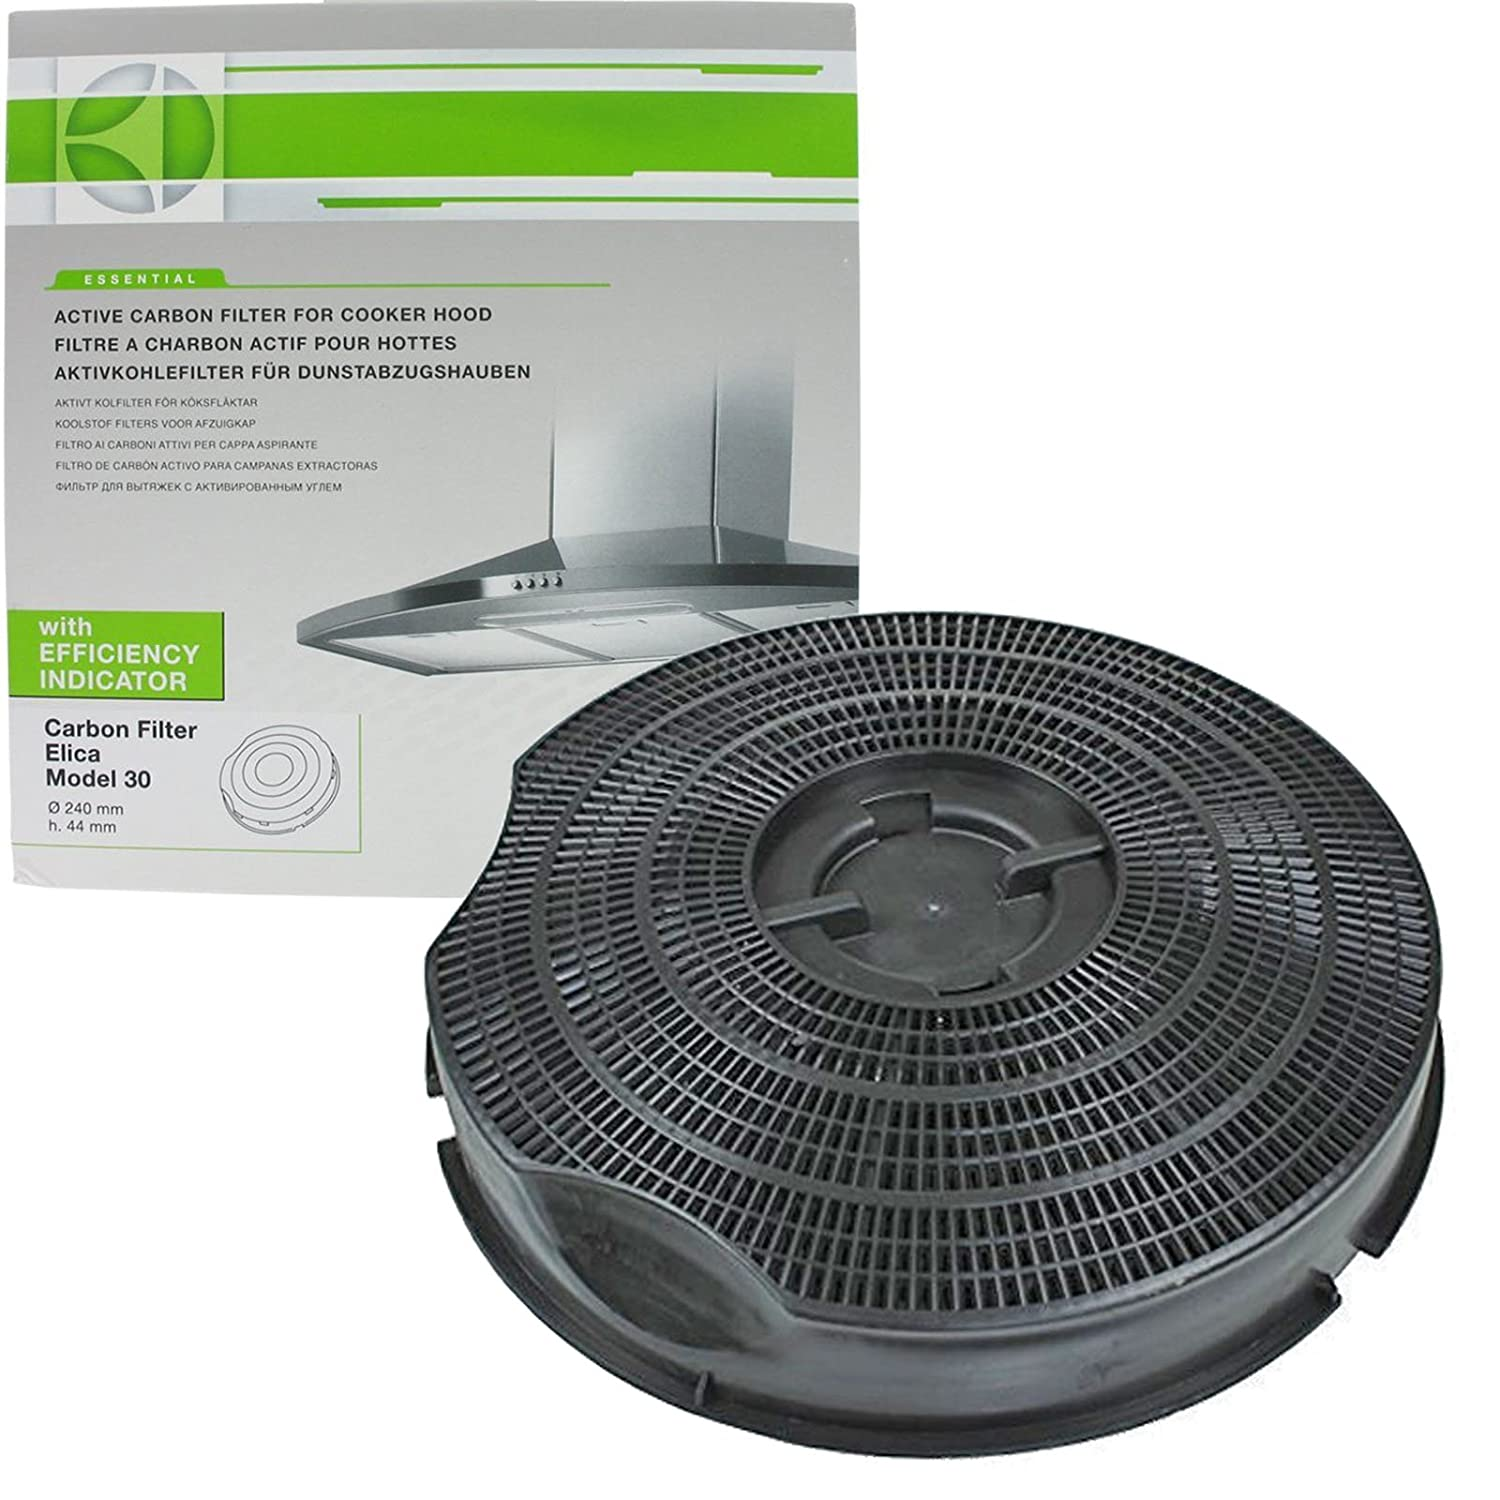 Genuine SMEG KSEG50 Type 30 Charcoal Carbon Cooker Hood Vent Filter (235 mm x 46 mm) Electrolux